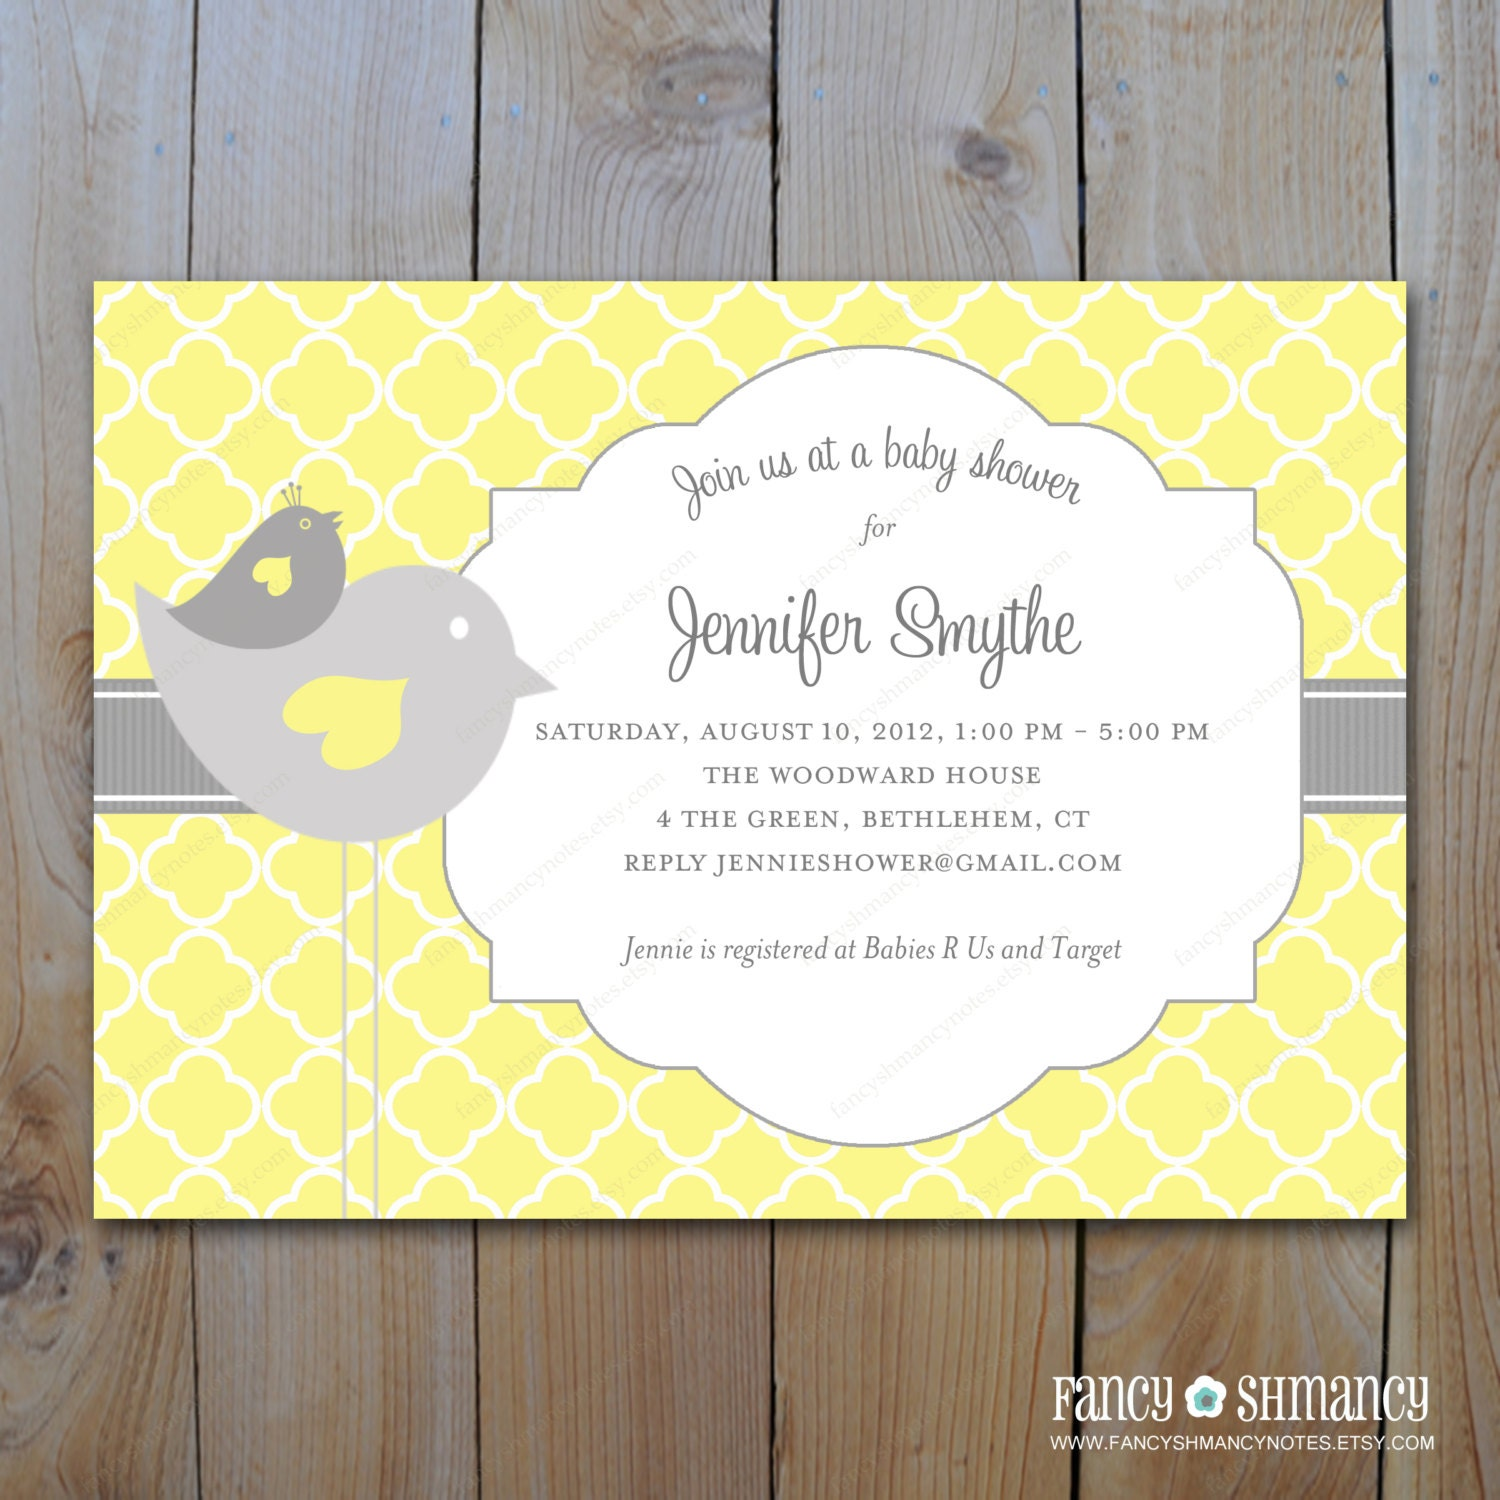 baby shower invitation grey and yellow by fancyshmancynotes